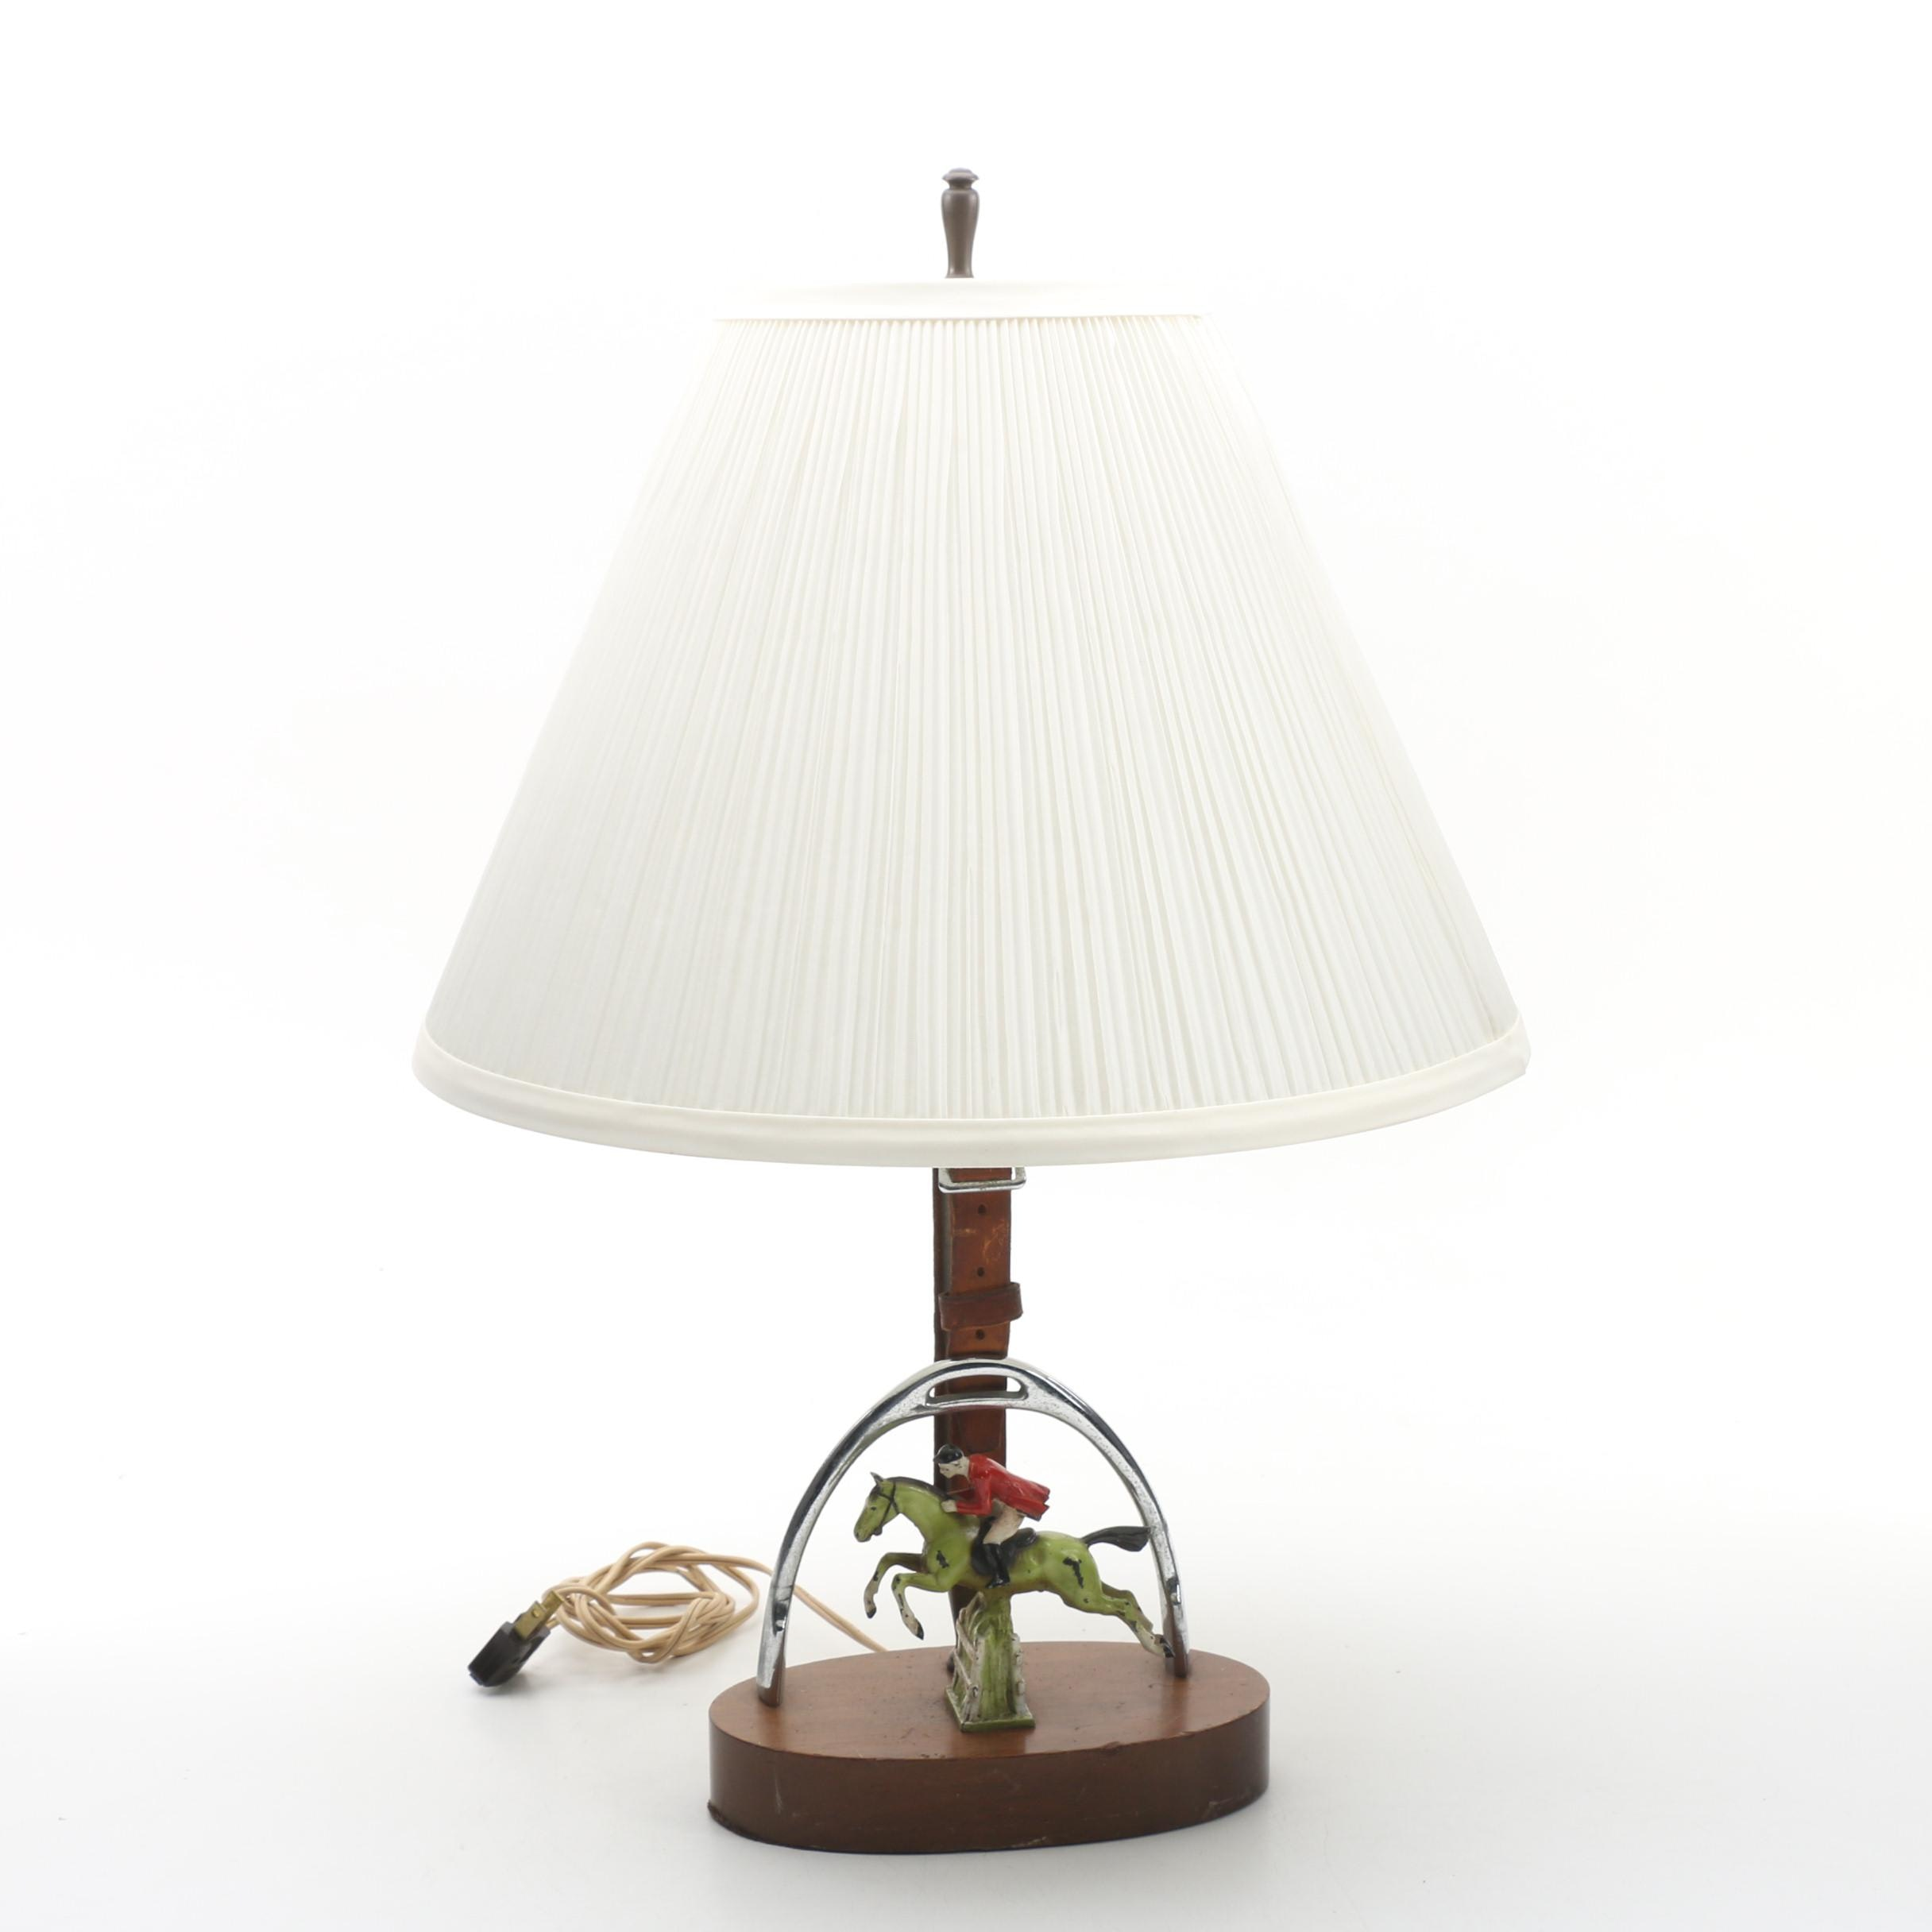 Equestrian-Themed Horse and Jockey Table Lamp with Shade